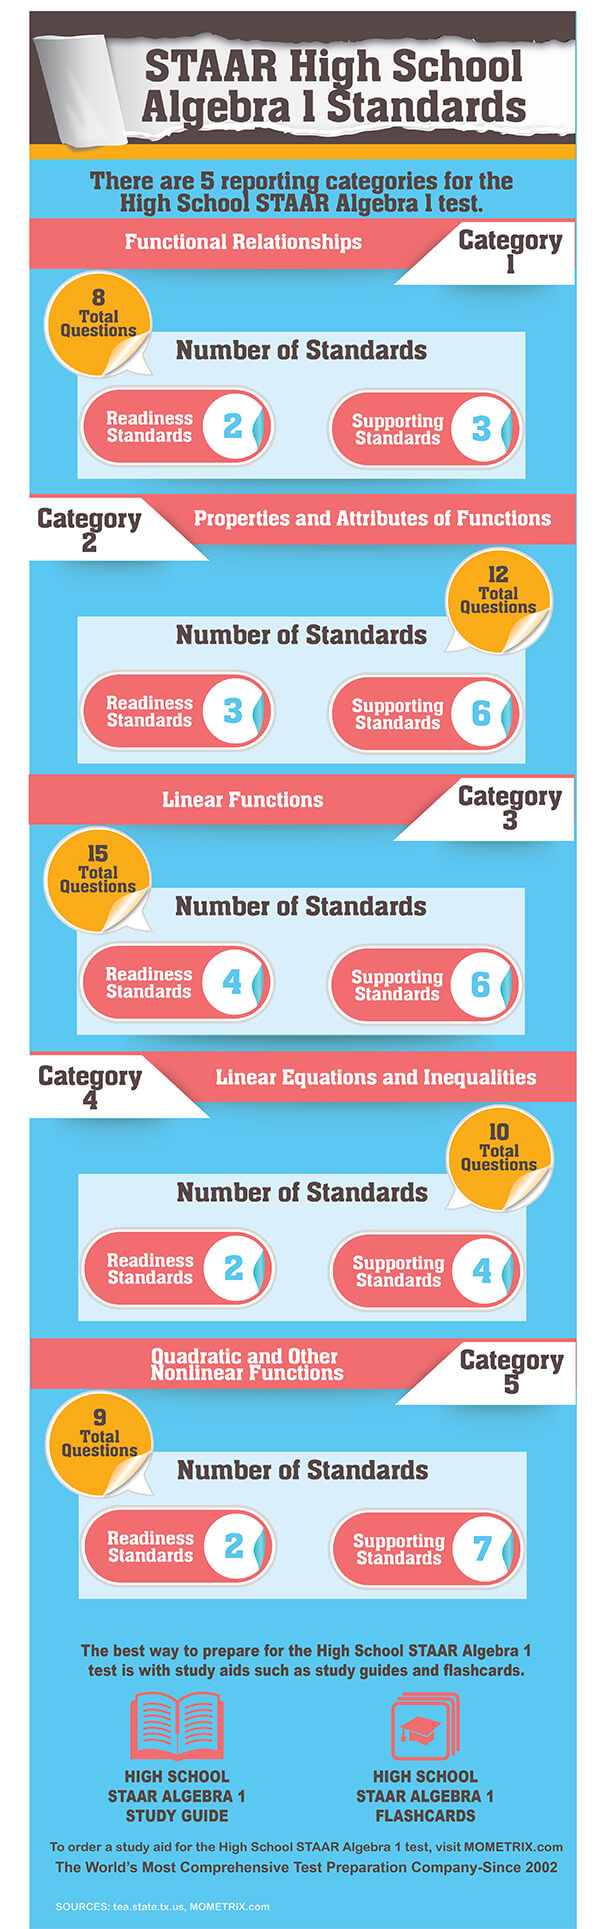 STAAR High School Algebra 1 Standards. There are 5 reporting categories for the High School STAAR Algebra 1 Test: Functional Relationships-8 questions; Properties and Attributes of Functions-12 questions, Linear Functions-15 questions; Linear Equations and Inequalities-10 questions; Quadratic and Other Nonlinear Functions-9 questions.